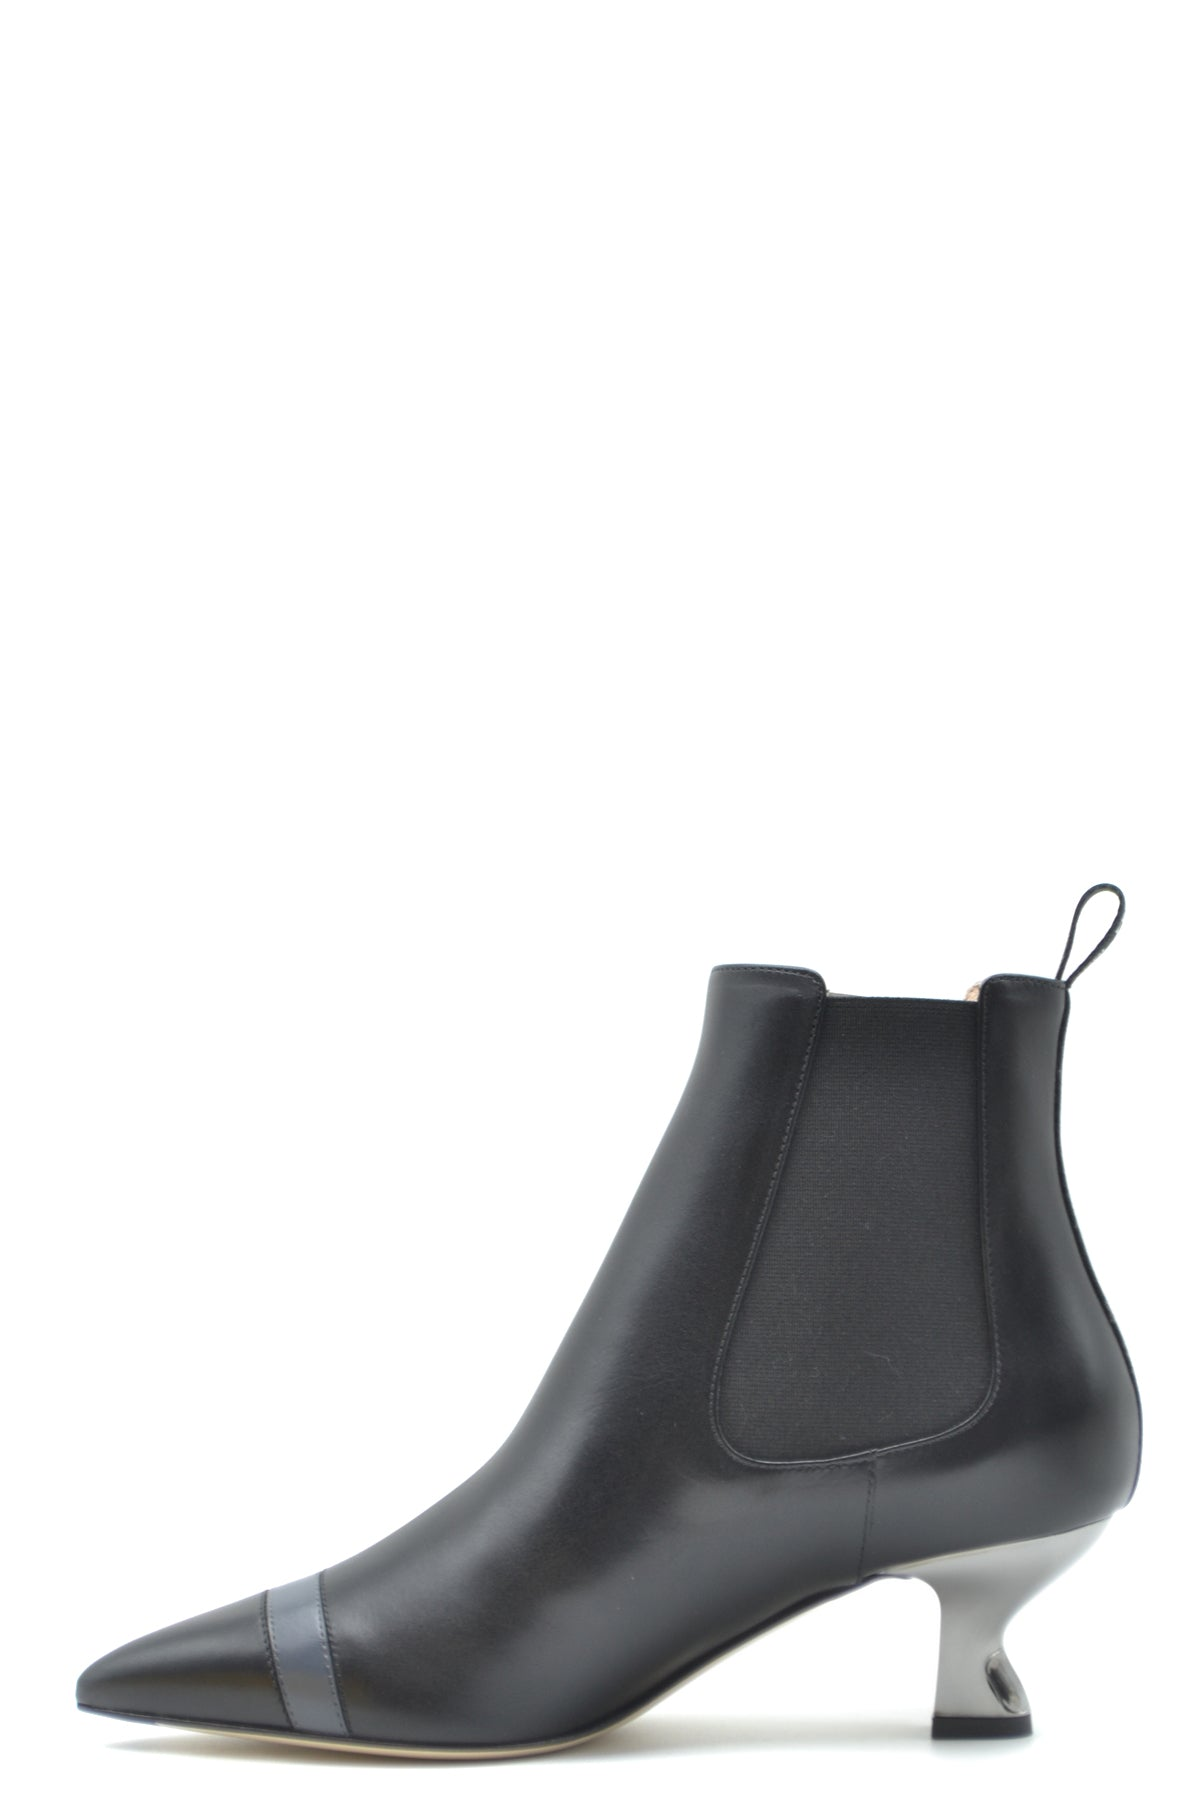 Shoes Fendi-Women's Fashion - Women's Shoes - Women's Boots-Product Details Terms: New With LabelMain Color: BlackType Of Accessory: BootsSeason: Fall / WinterMade In: ItalyGender: WomanHeel'S Height: 5Size: EuComposition: Leather 100%Year: 2020Manufacturer Part Number: 8T6956 A2C9 F17S3-Keyomi-Sook